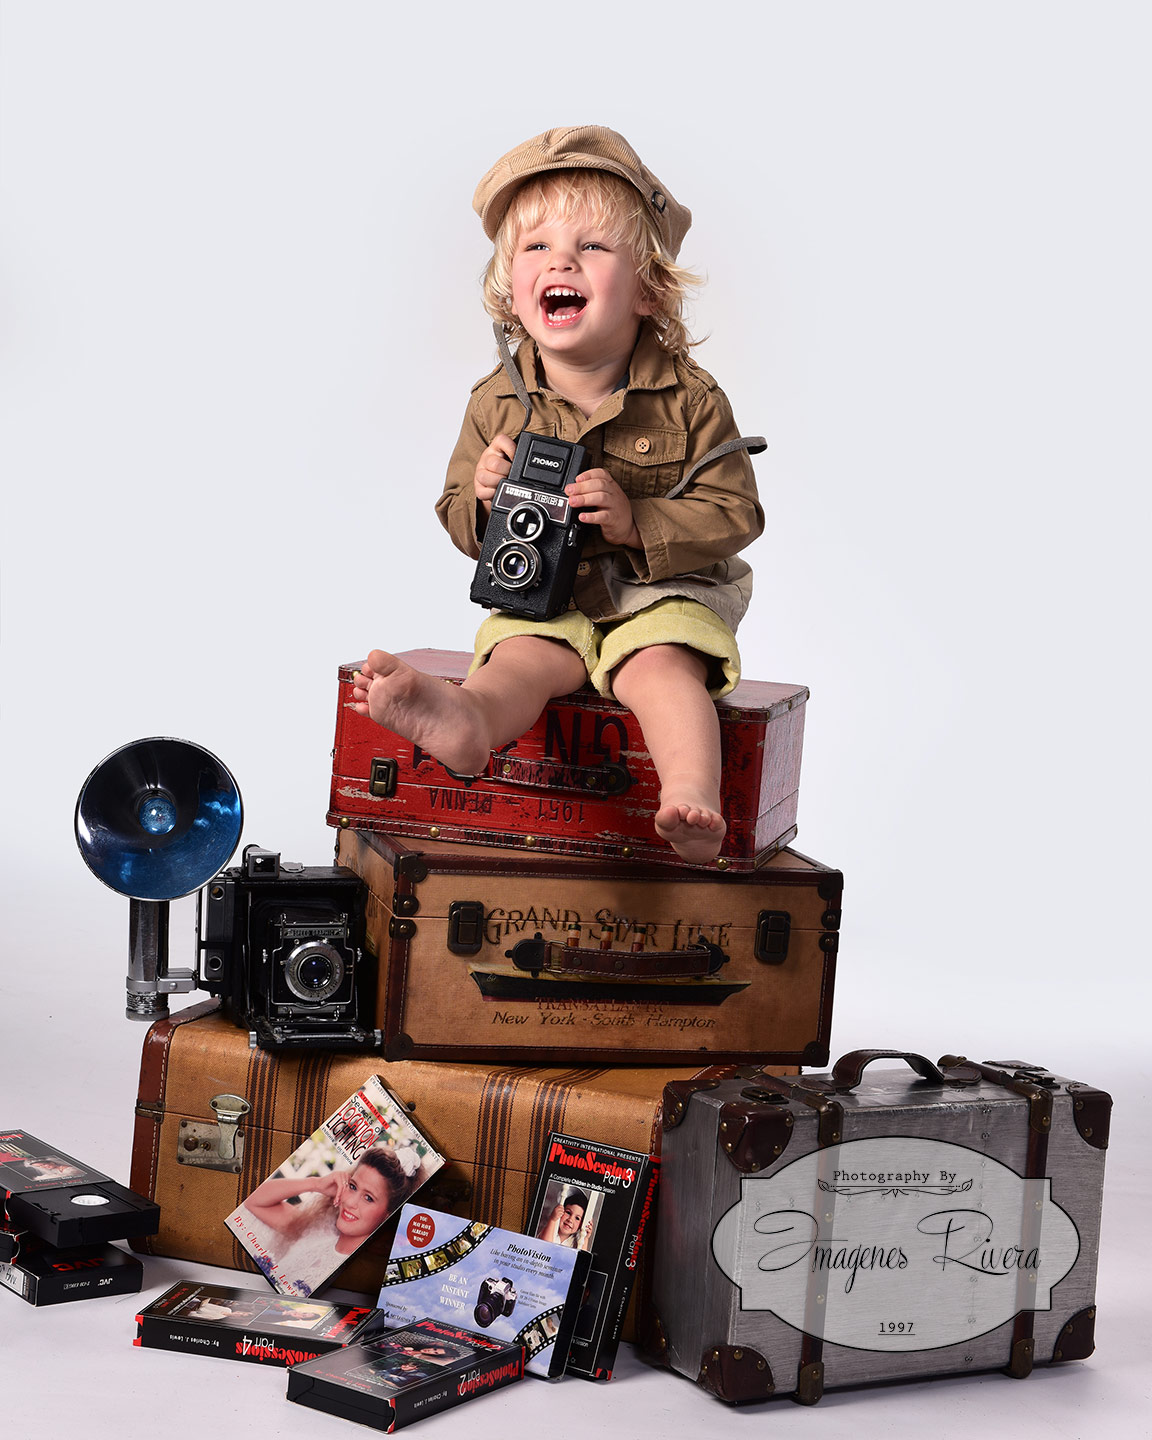 ♥ Cute kid portrait | Children photographer Imagenes Rivera ♥